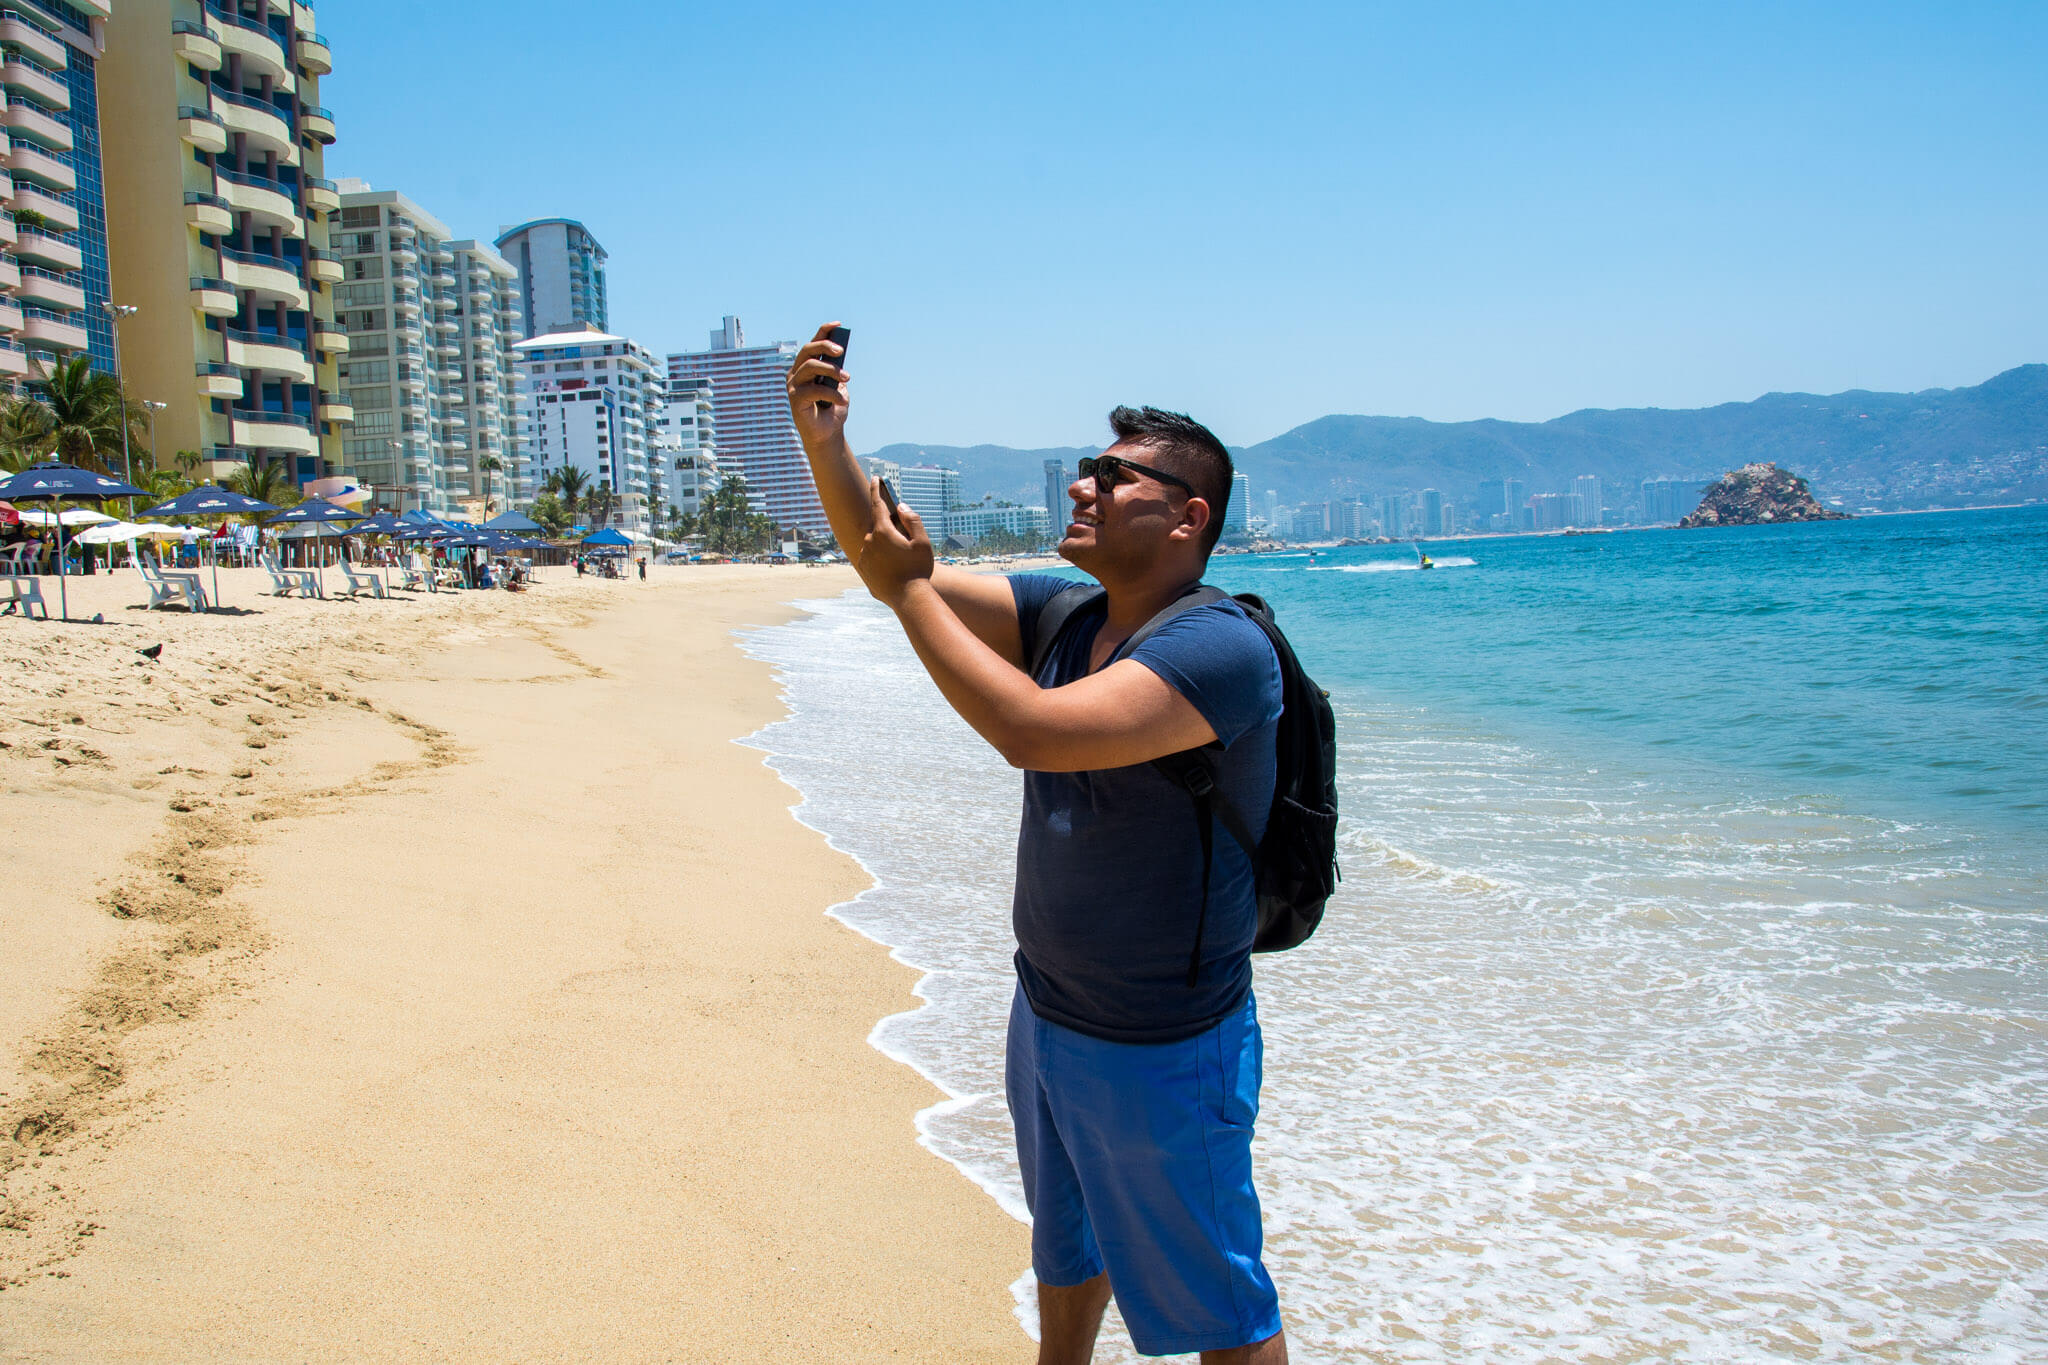 Me uploading a travel selfie using the TEP Wireless device